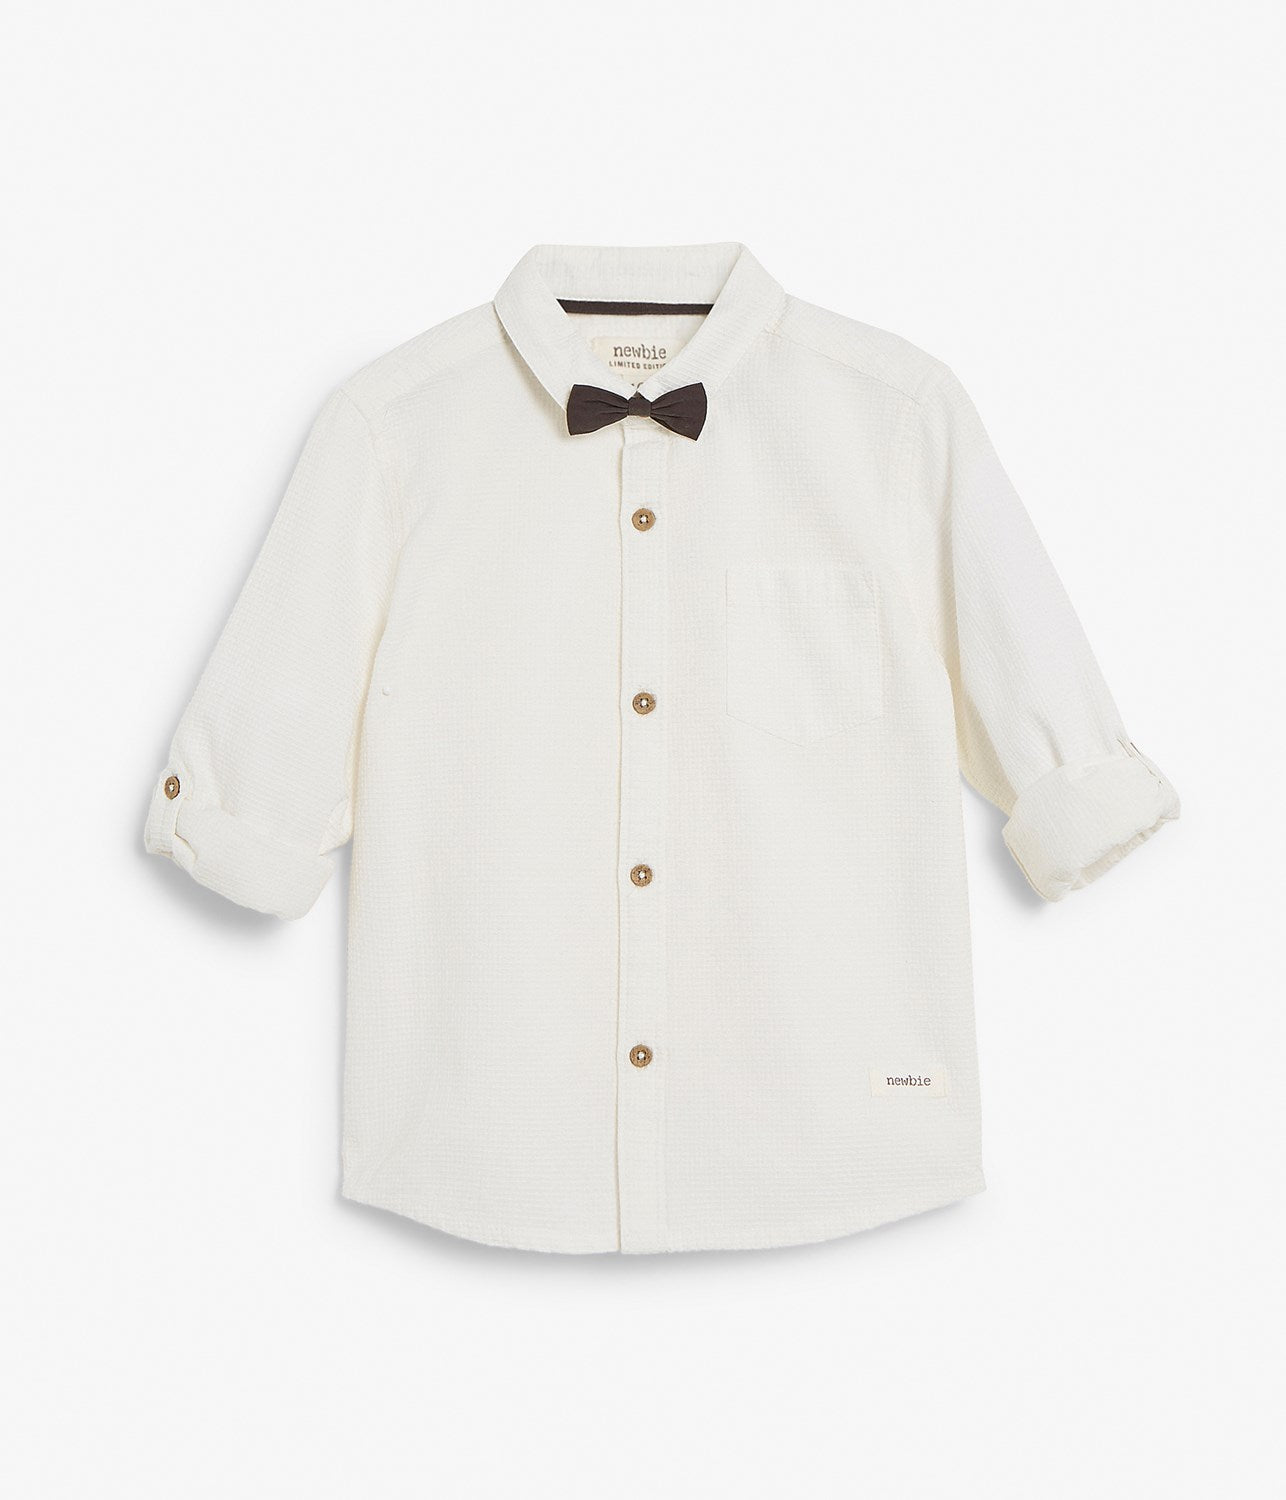 Kids white shirt with tie bow